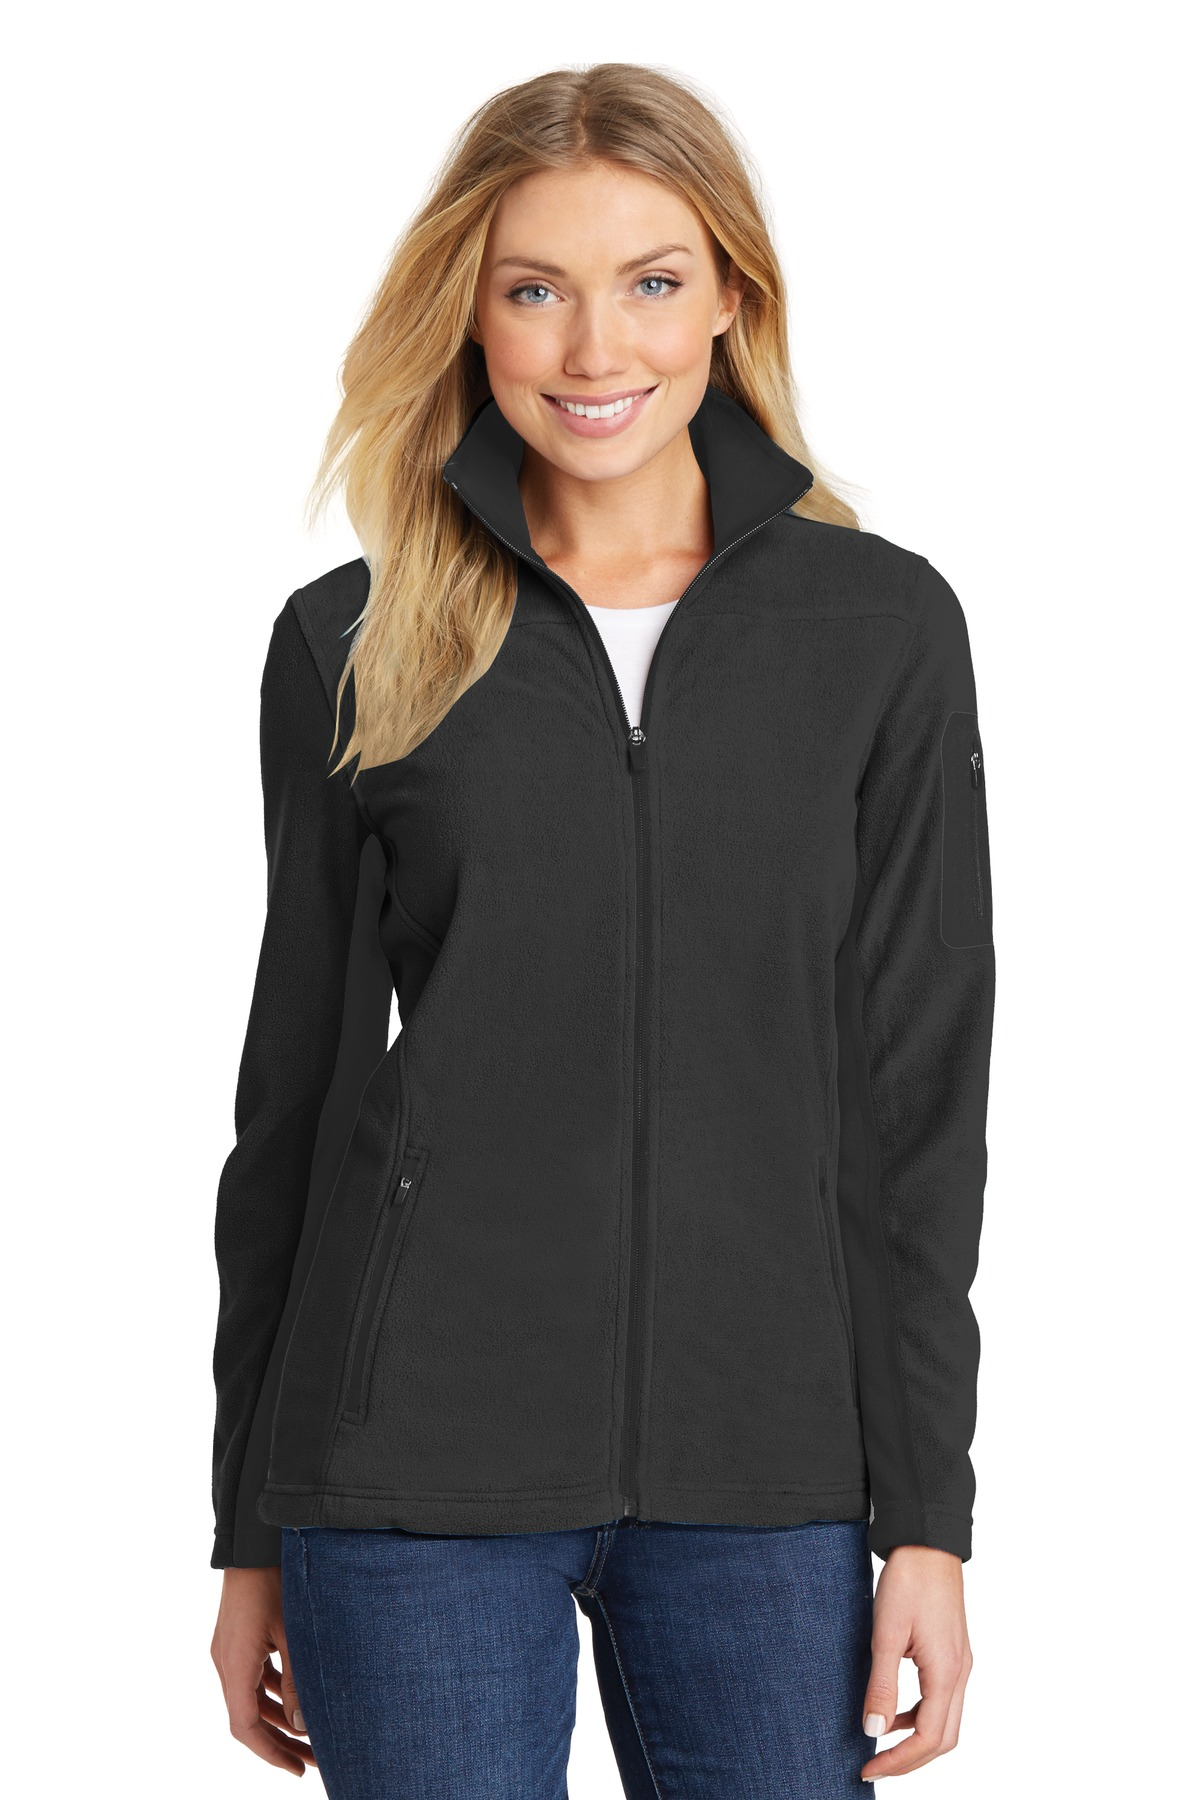 Port Authority  L233 - Ladies Summit Fleece Full-Zip ...